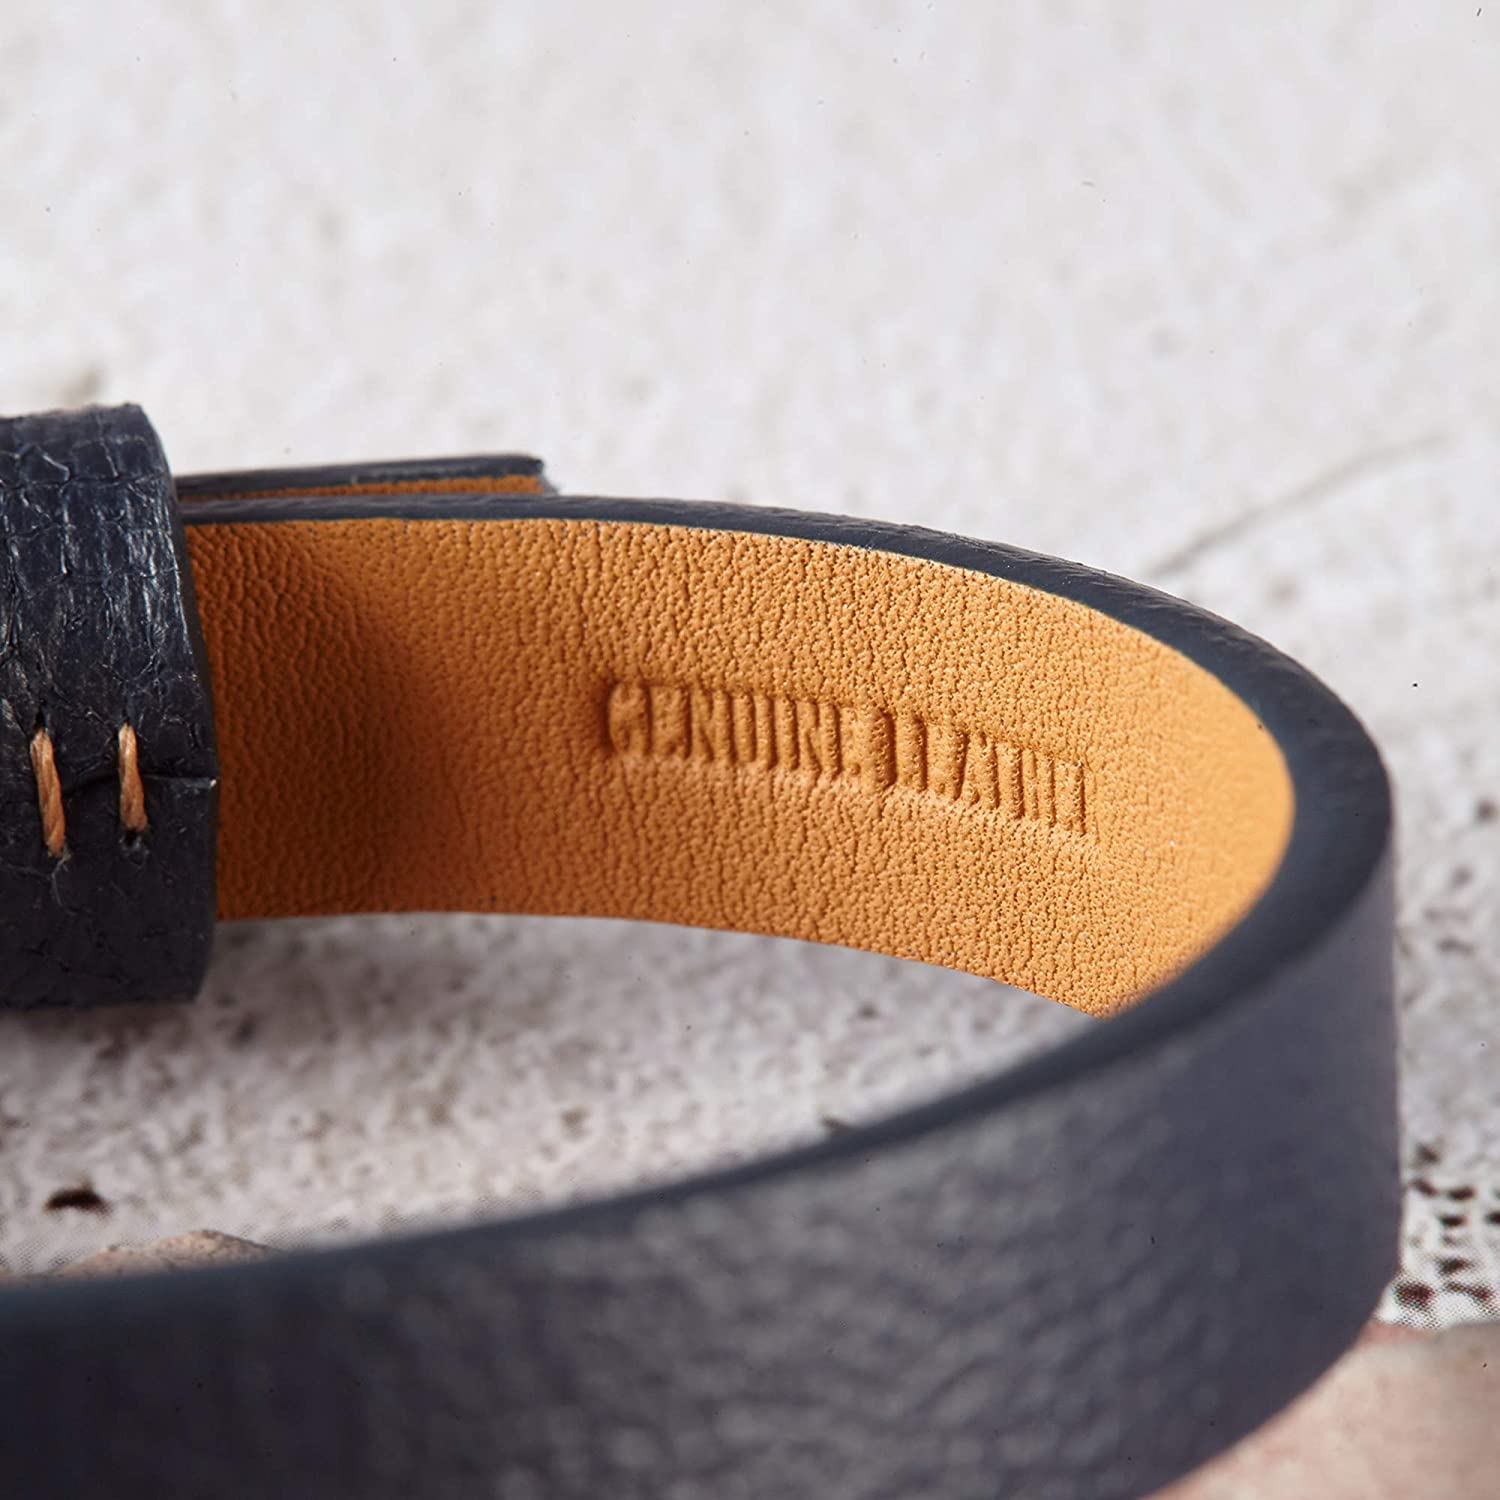 Dad Gift From Wife Mens Name Bracelet Husband Gift Husband Bracelet Name Bracelet For Men Dad Bracelet Genuine Leather Bracelet Kids Name Bracelet Bracelet With Names